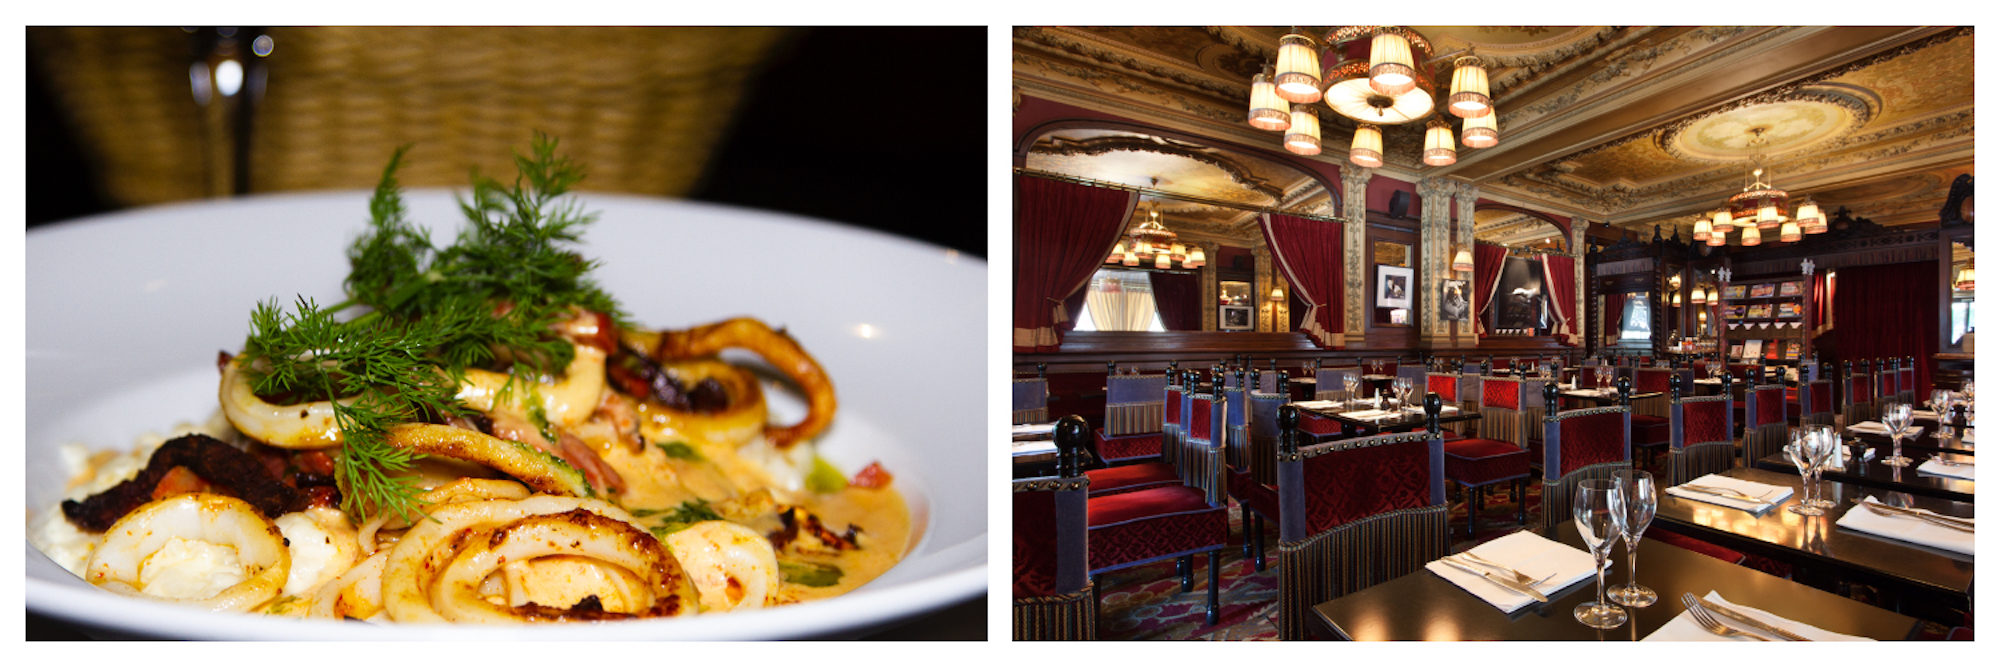 Top place to eat in Paris for its Alsatian-inspired fare, Brasserie Zimmer is on the Place du Châtelet in Paris' 1st district and serves seafood like grilled octopus (left) and has old-world wooden and red velvet interiors (right).